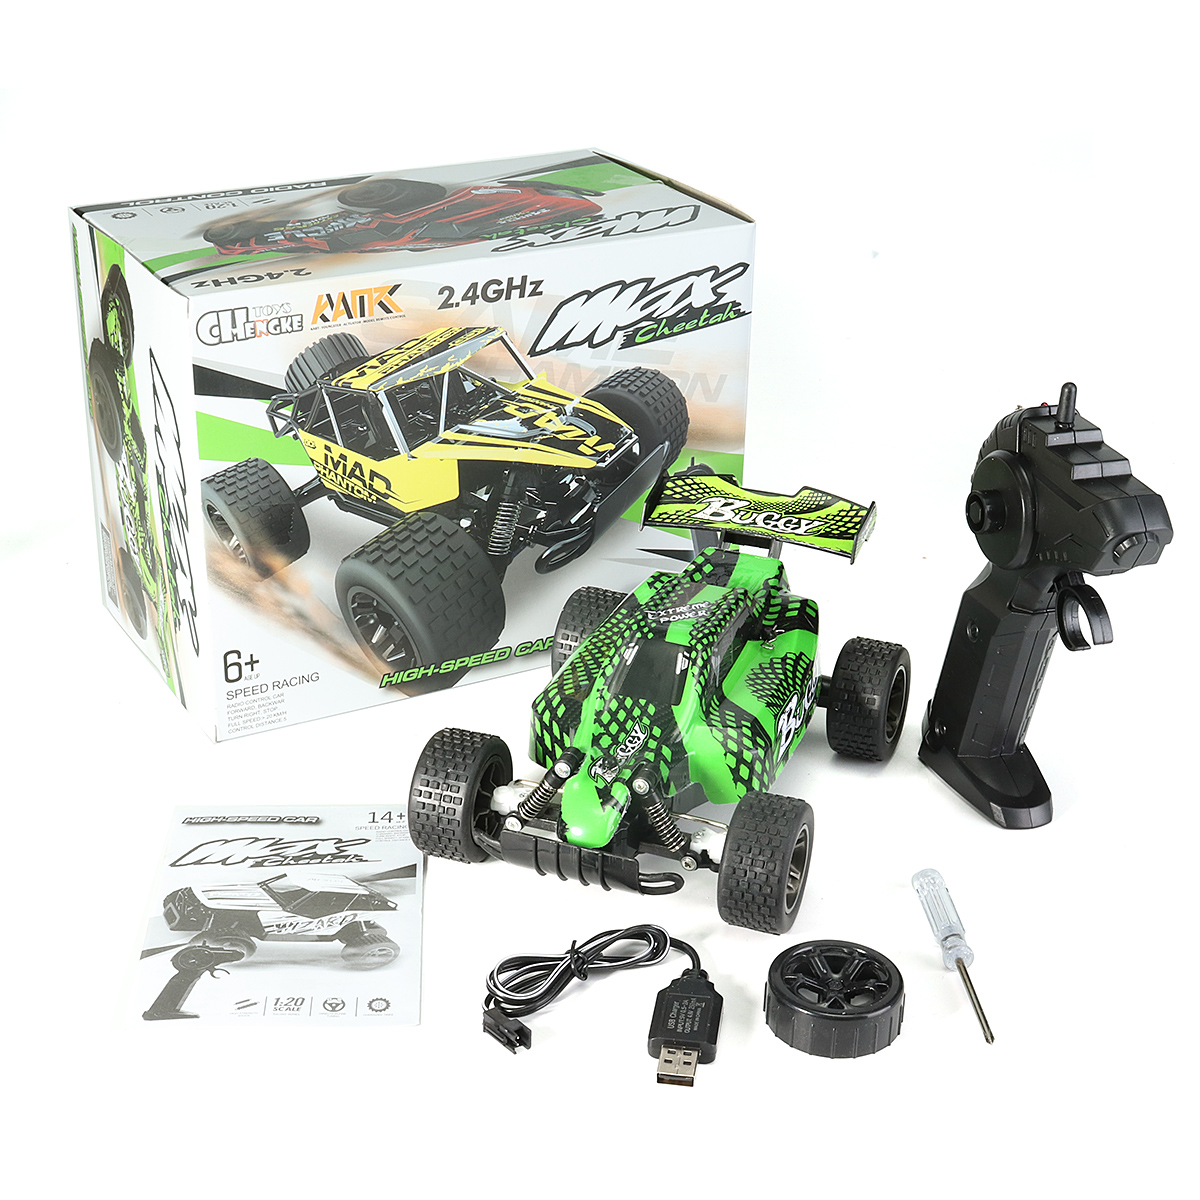 1:20 2.4GHz 4WD High Speed Radio Fast Remote Control RC Car RTR Racing buggy Car Off Road Toy For Children Gift